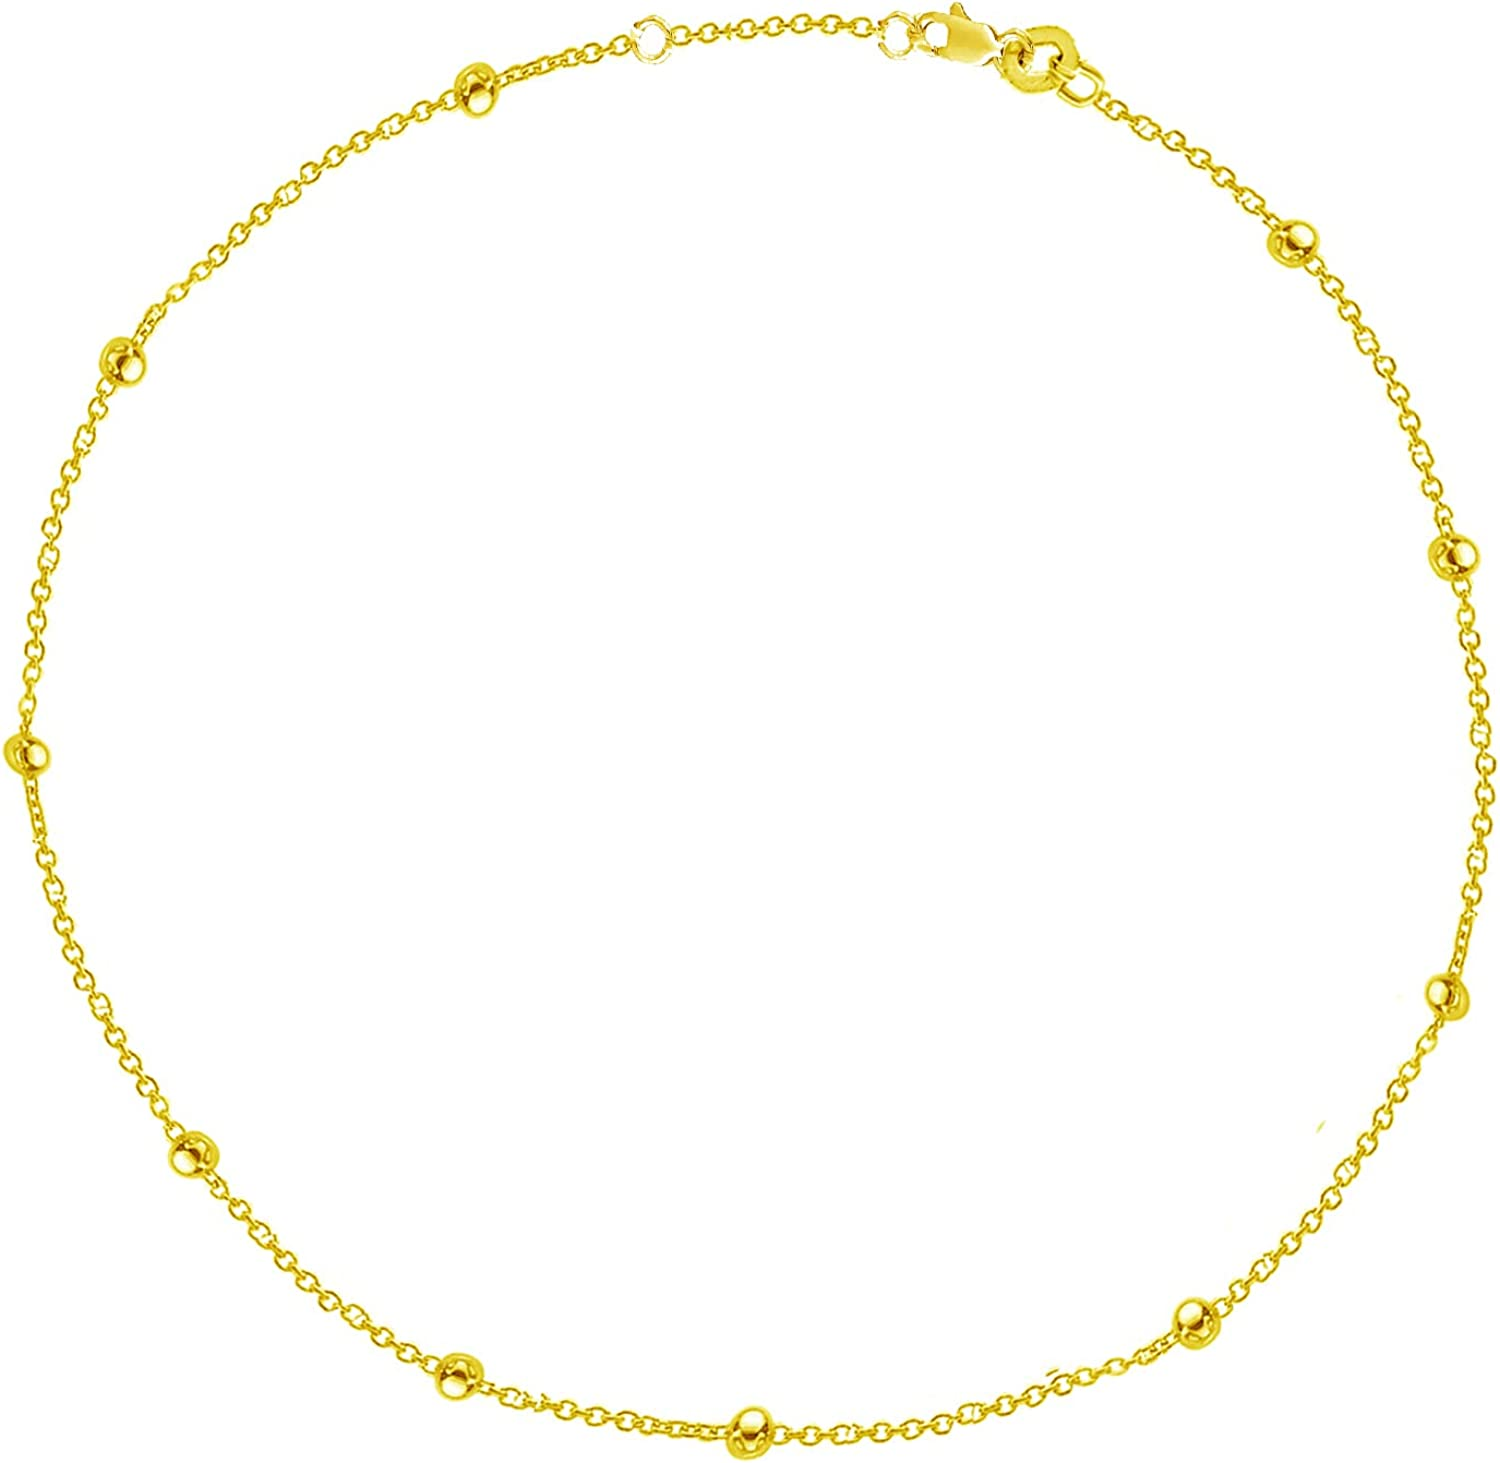 Ritastephen 14K Yellow Gold Bead Ball Anklet and Cable Link Bead Anklet Adjustable 9-10 Inches